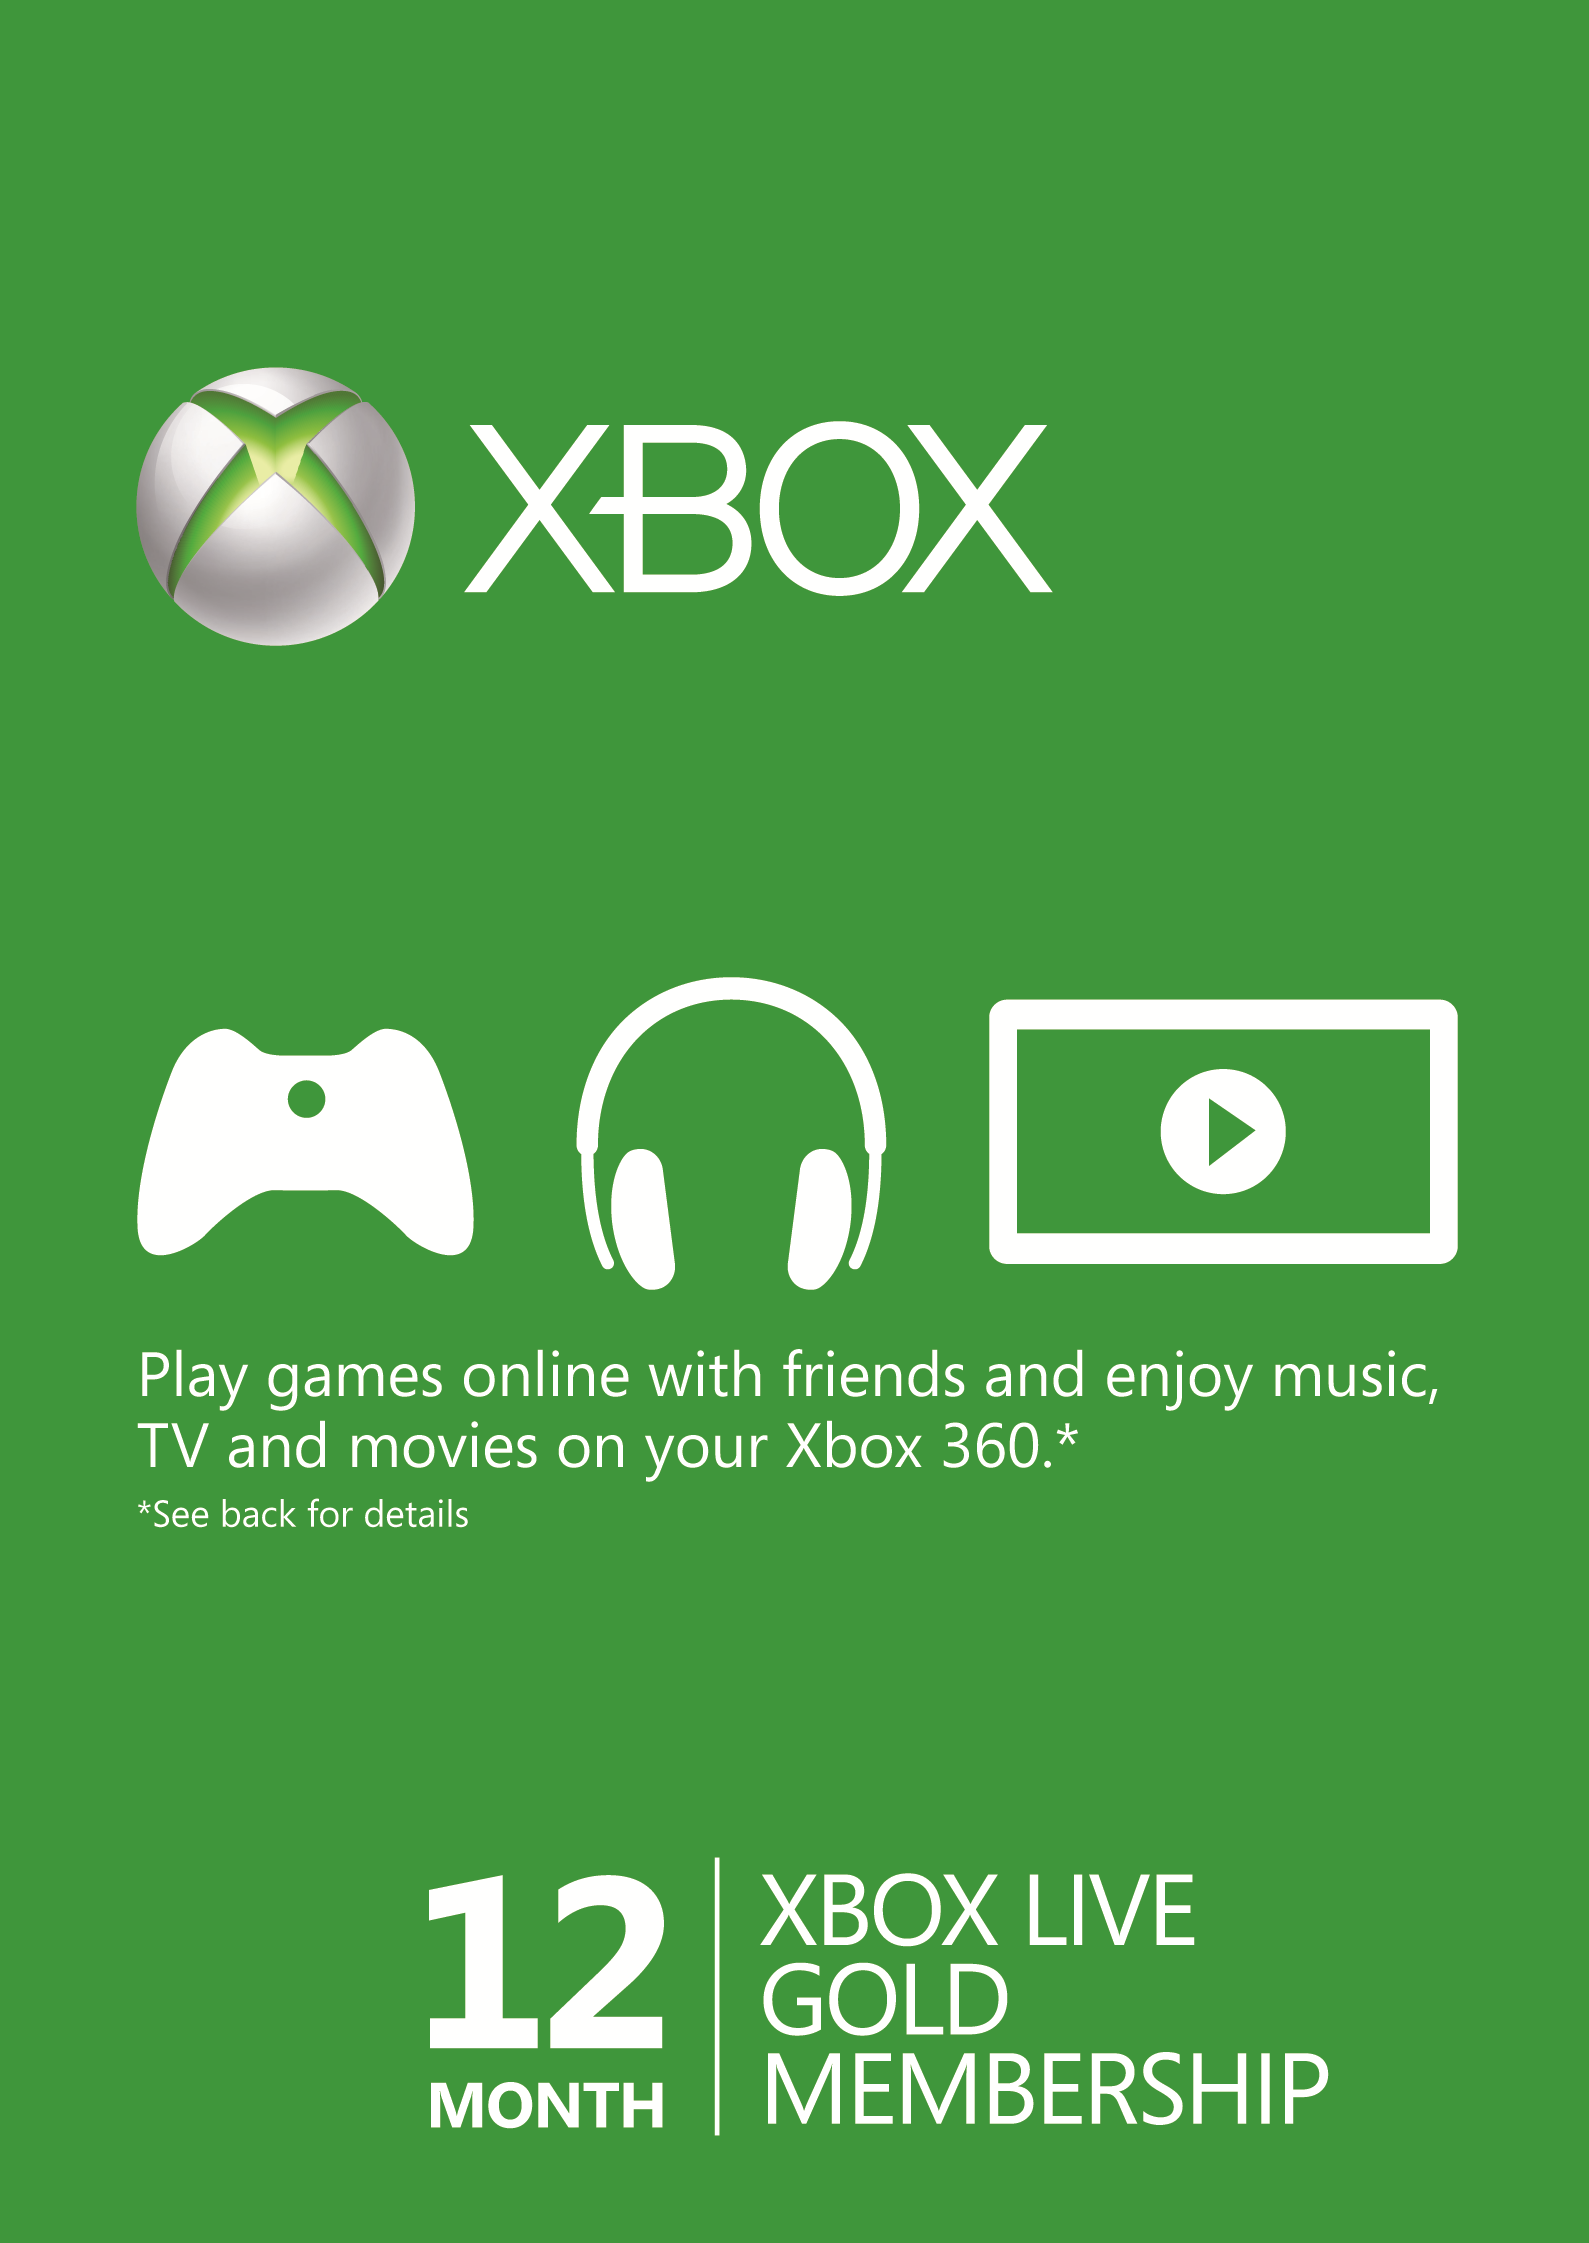 12 Month Xbox Live Gold Membership (Xbox One/360).